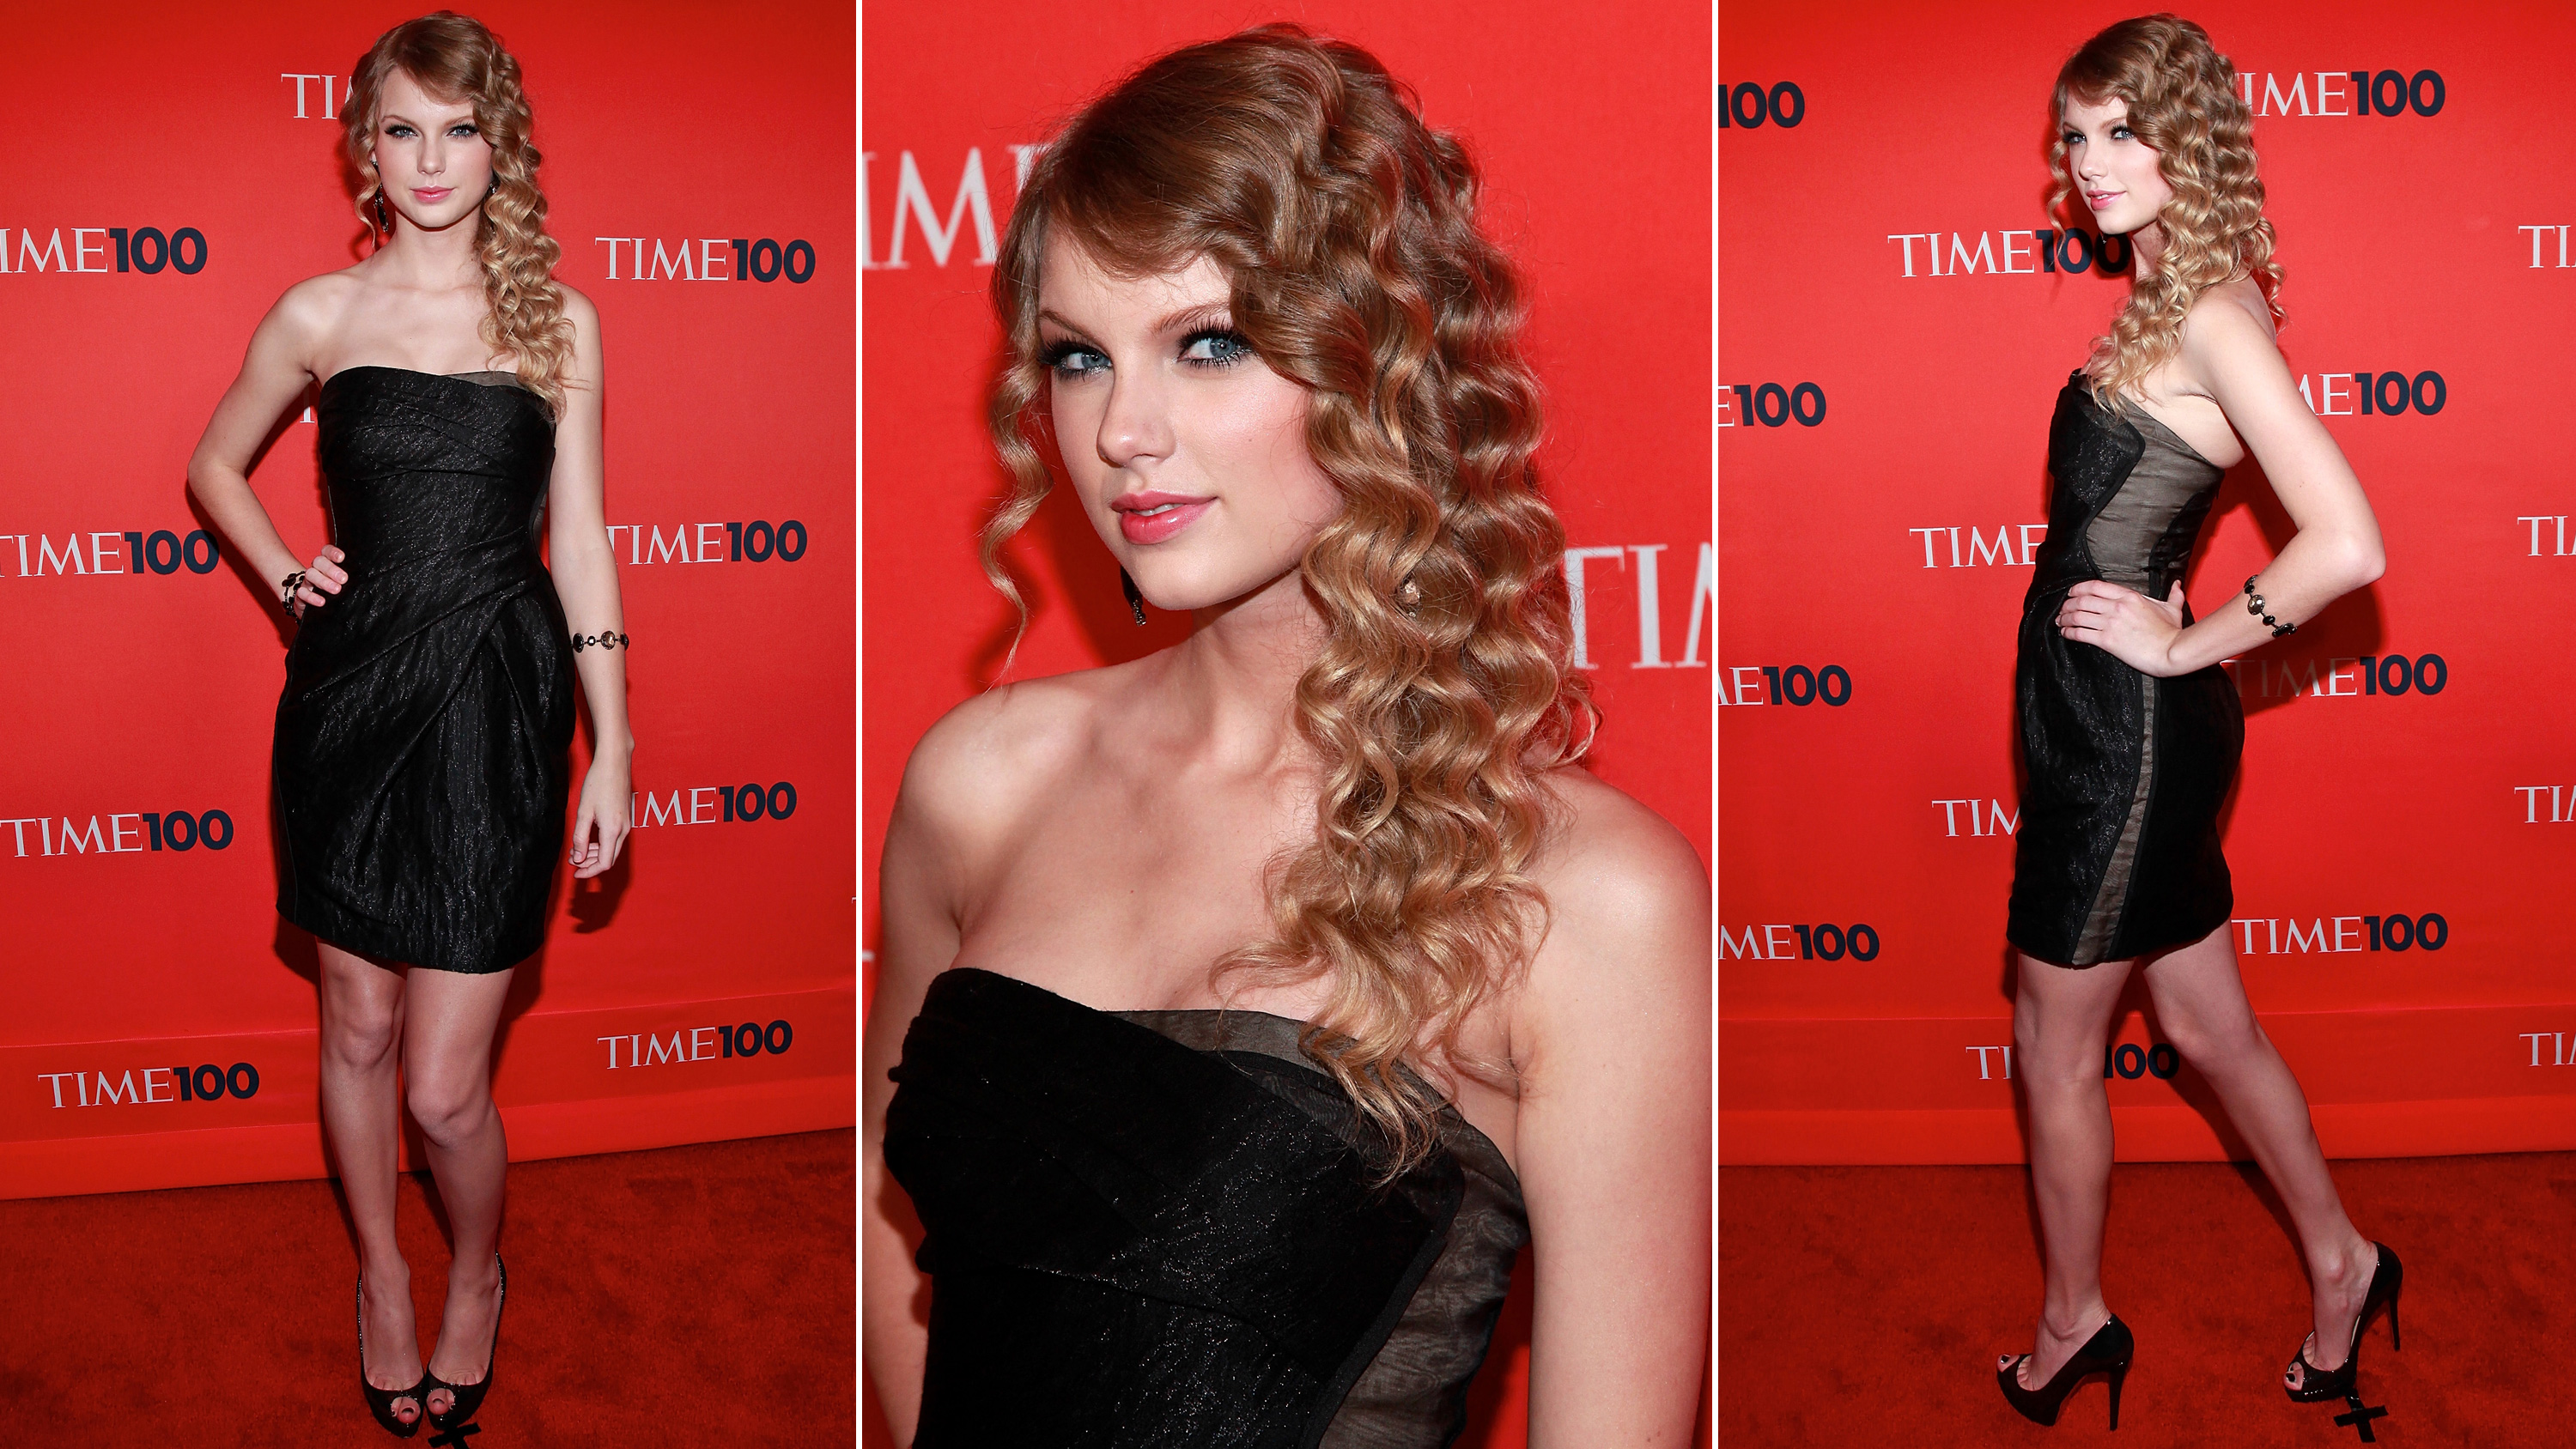 taylor-swift-time-100-gowns